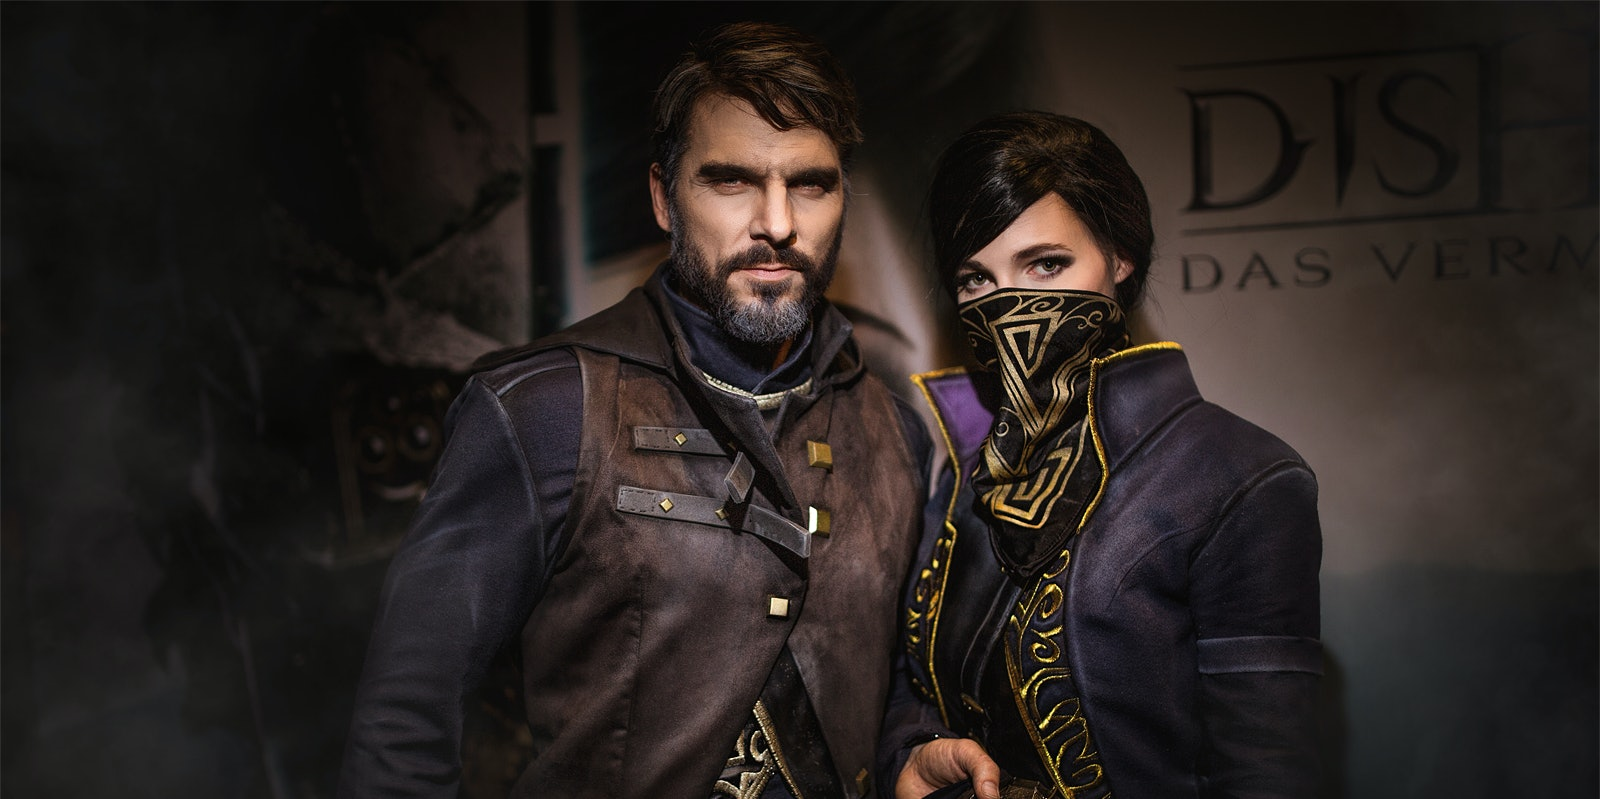 'Dishonored 2' is as mysterious and full of wonders as these cosplayers.